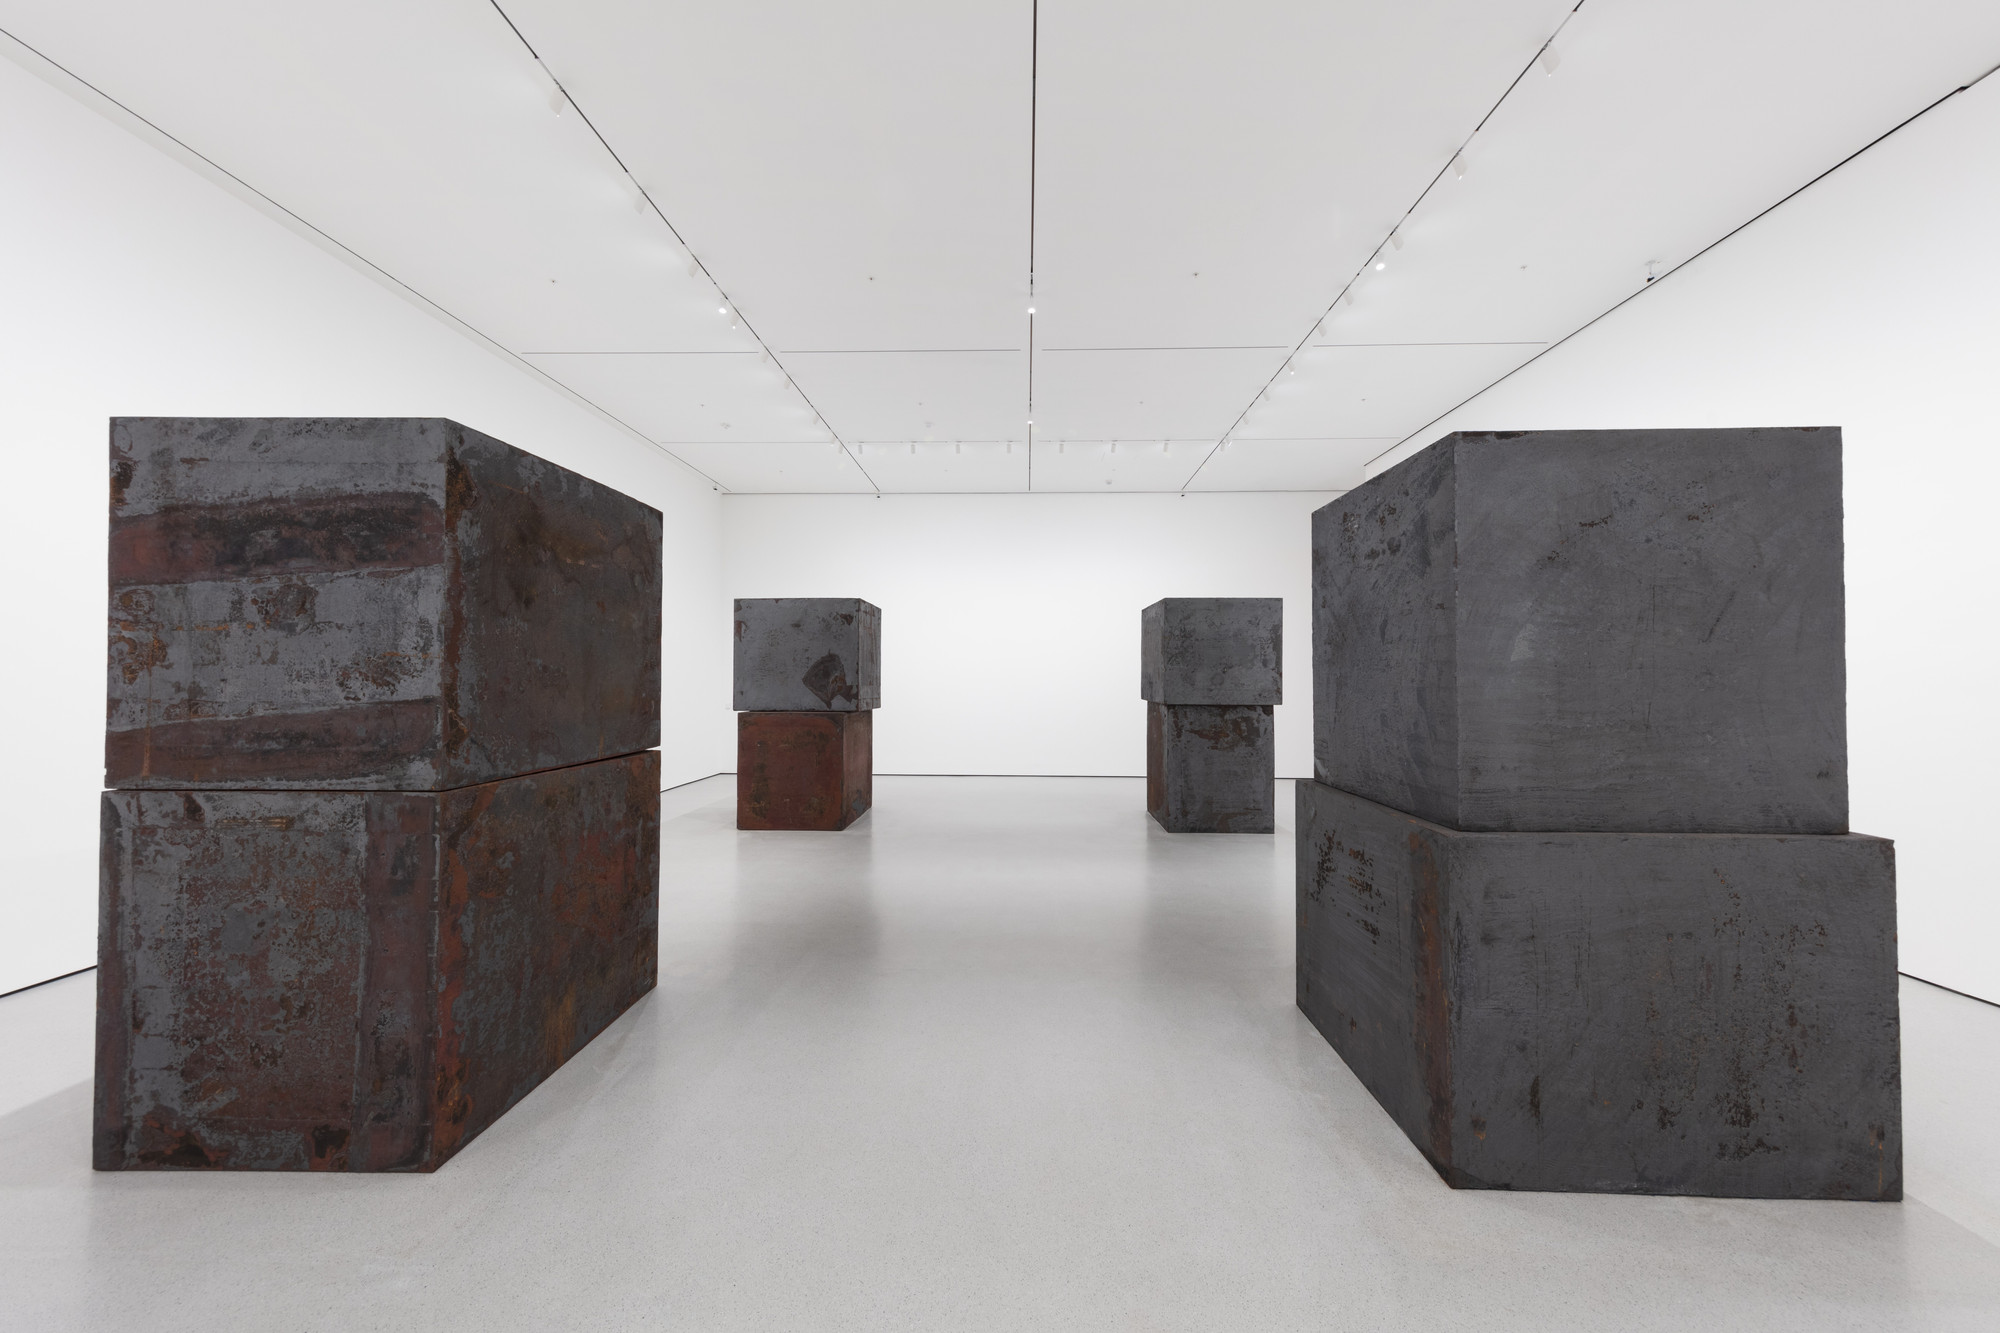 Richard Serra. Equal. 2015